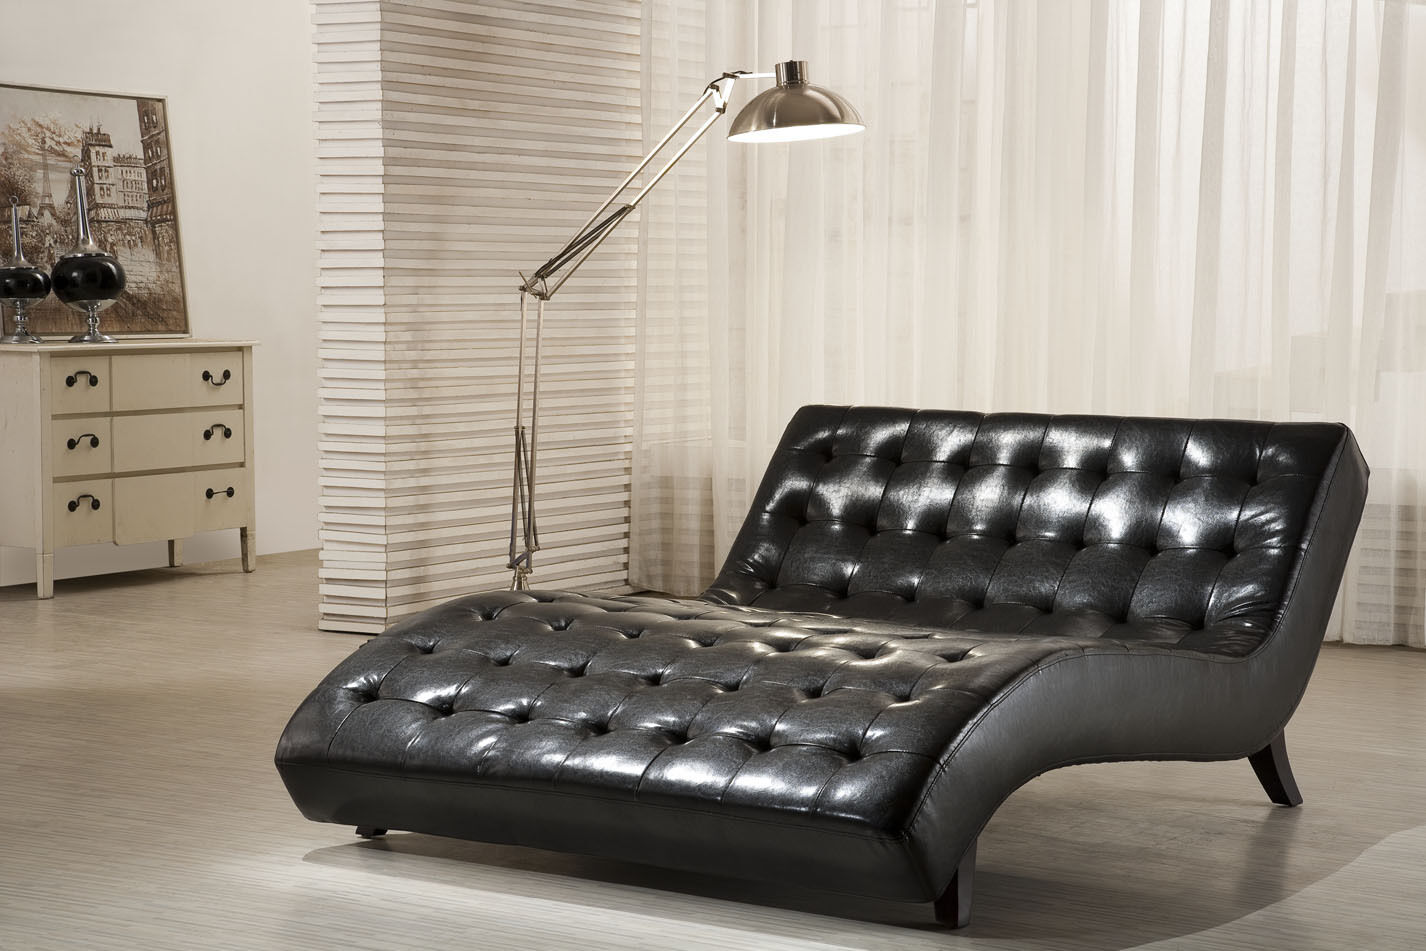 doppel liege sofa recamiere lounge chaiselongue relaxliege 516 mm llw sofort eur 99 00. Black Bedroom Furniture Sets. Home Design Ideas